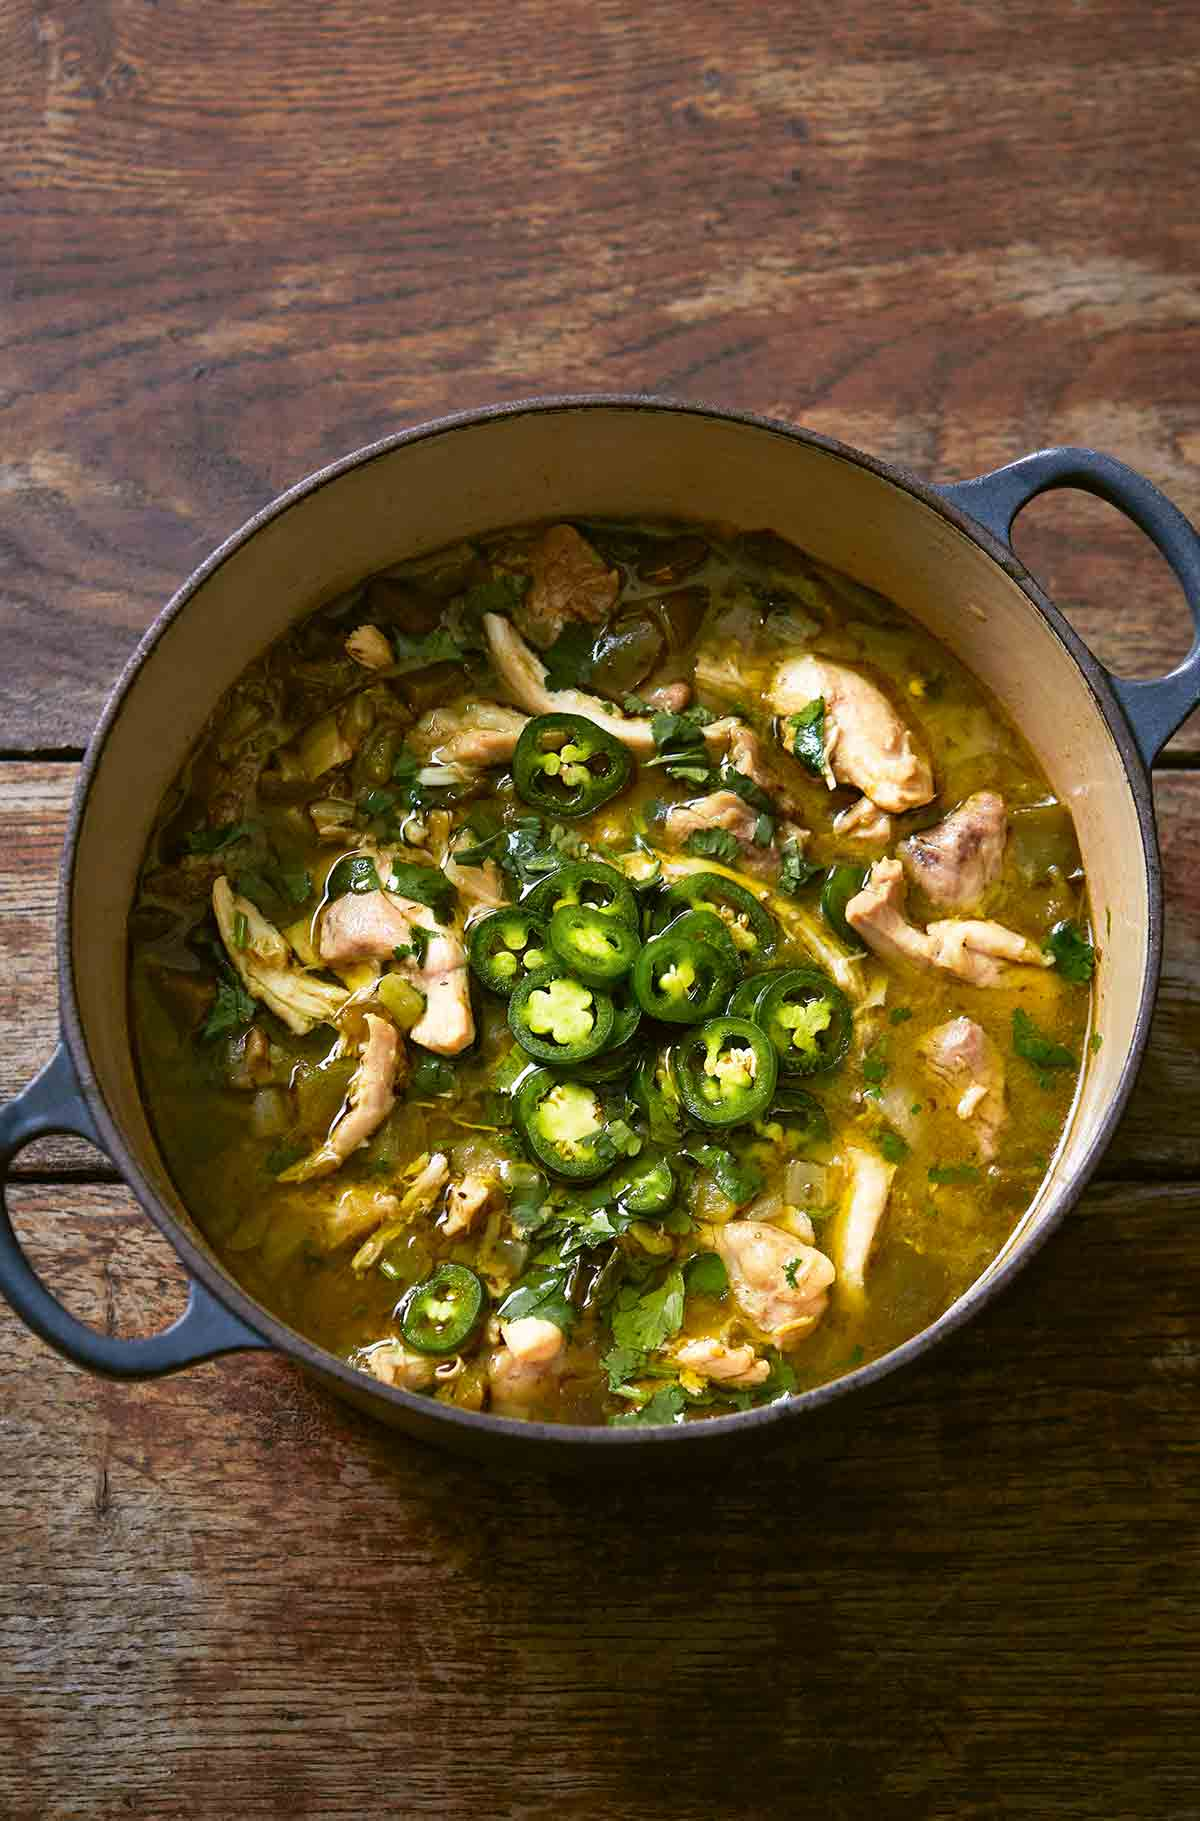 A large blue Dutch oven filled with green chicken chili, topped with sliced jalapenos.